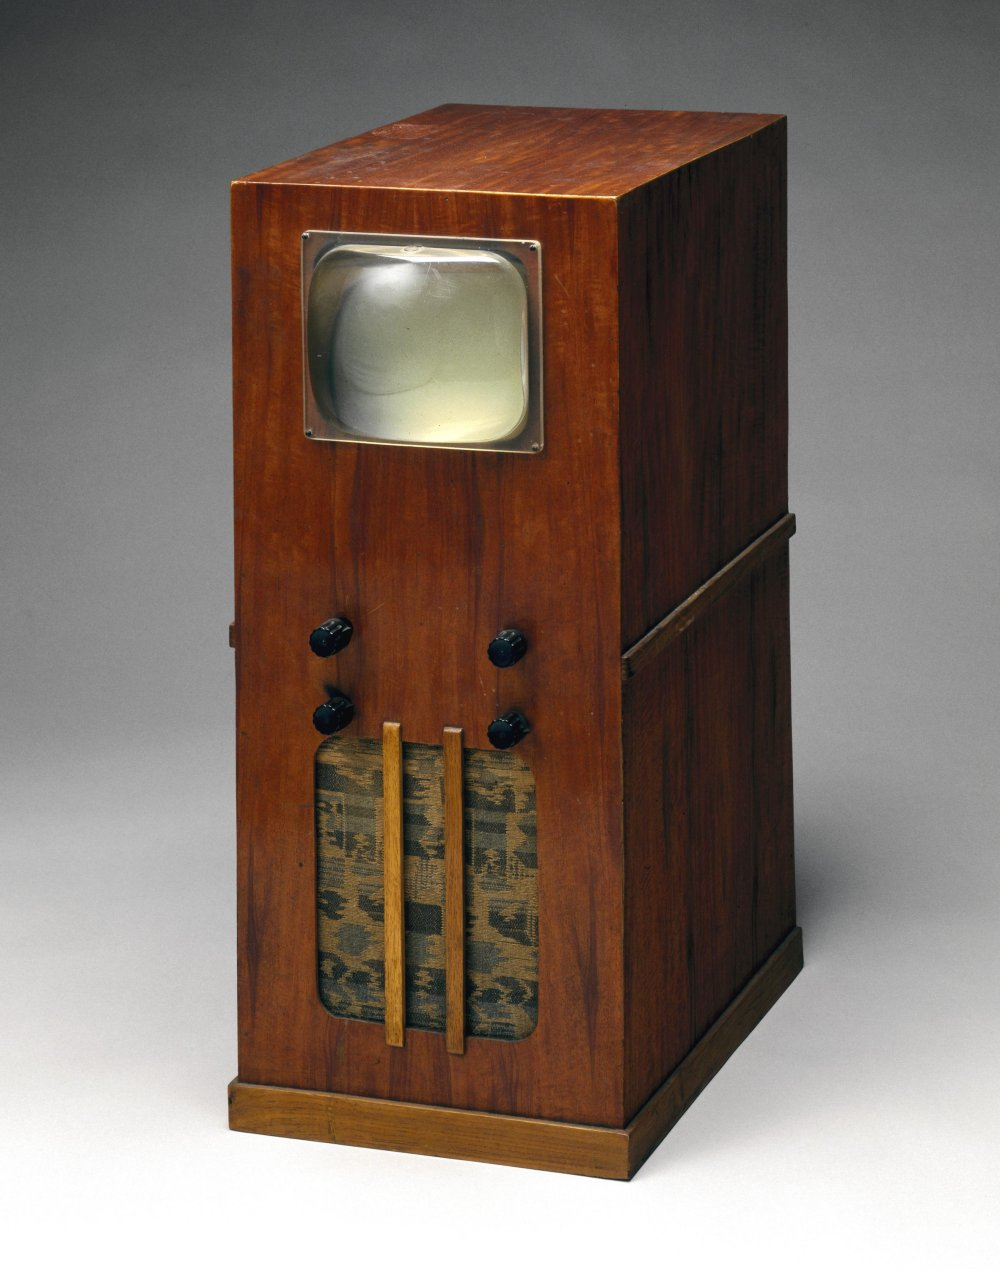 Home-made television receiver built from a Premier Radio kit (1945-1955)